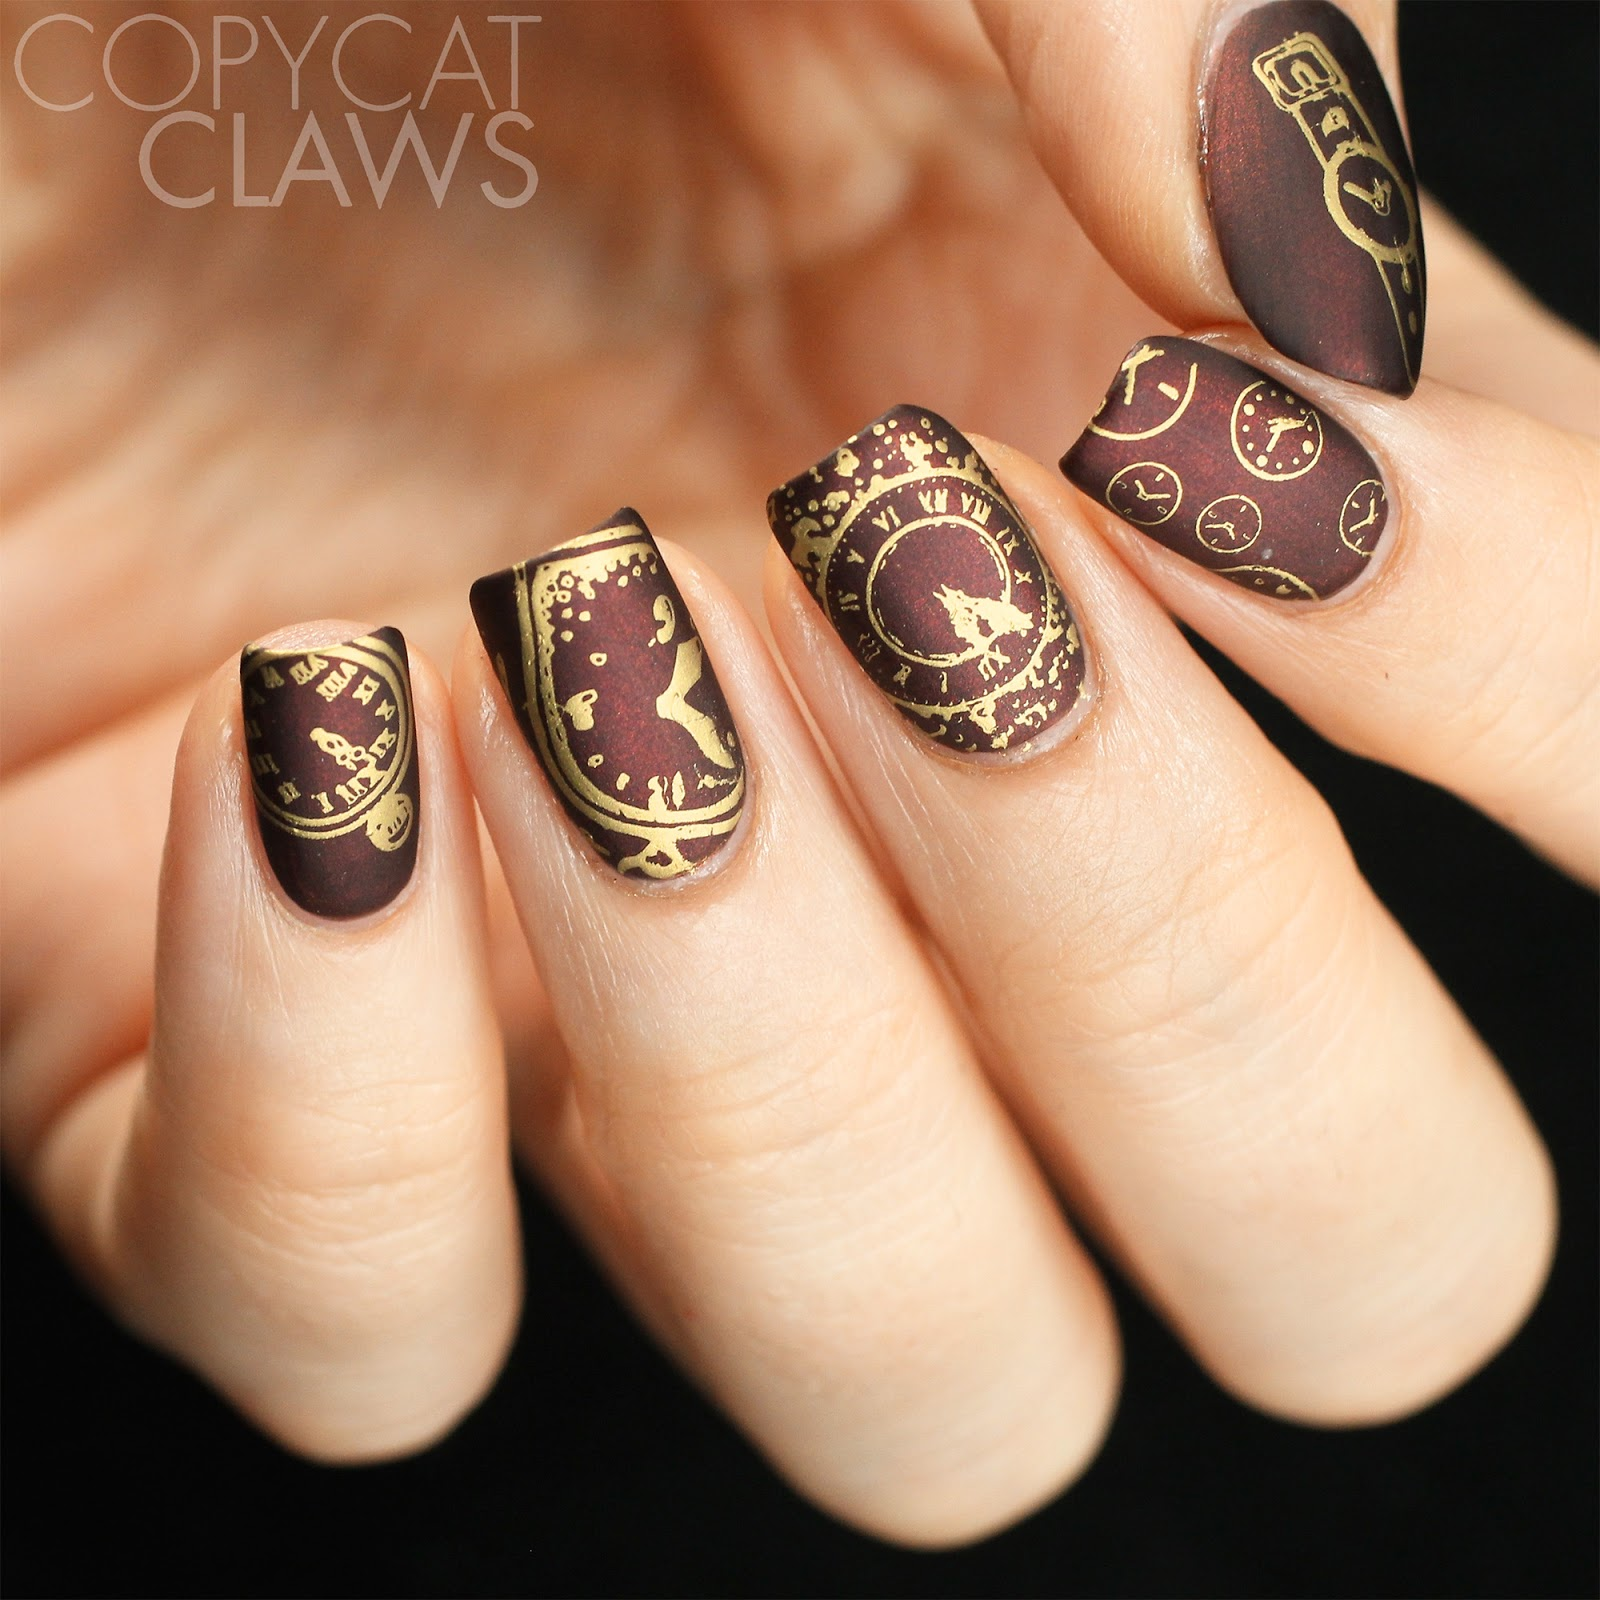 Copycat Claws 26 Great Nail Art Ideas New Year New You